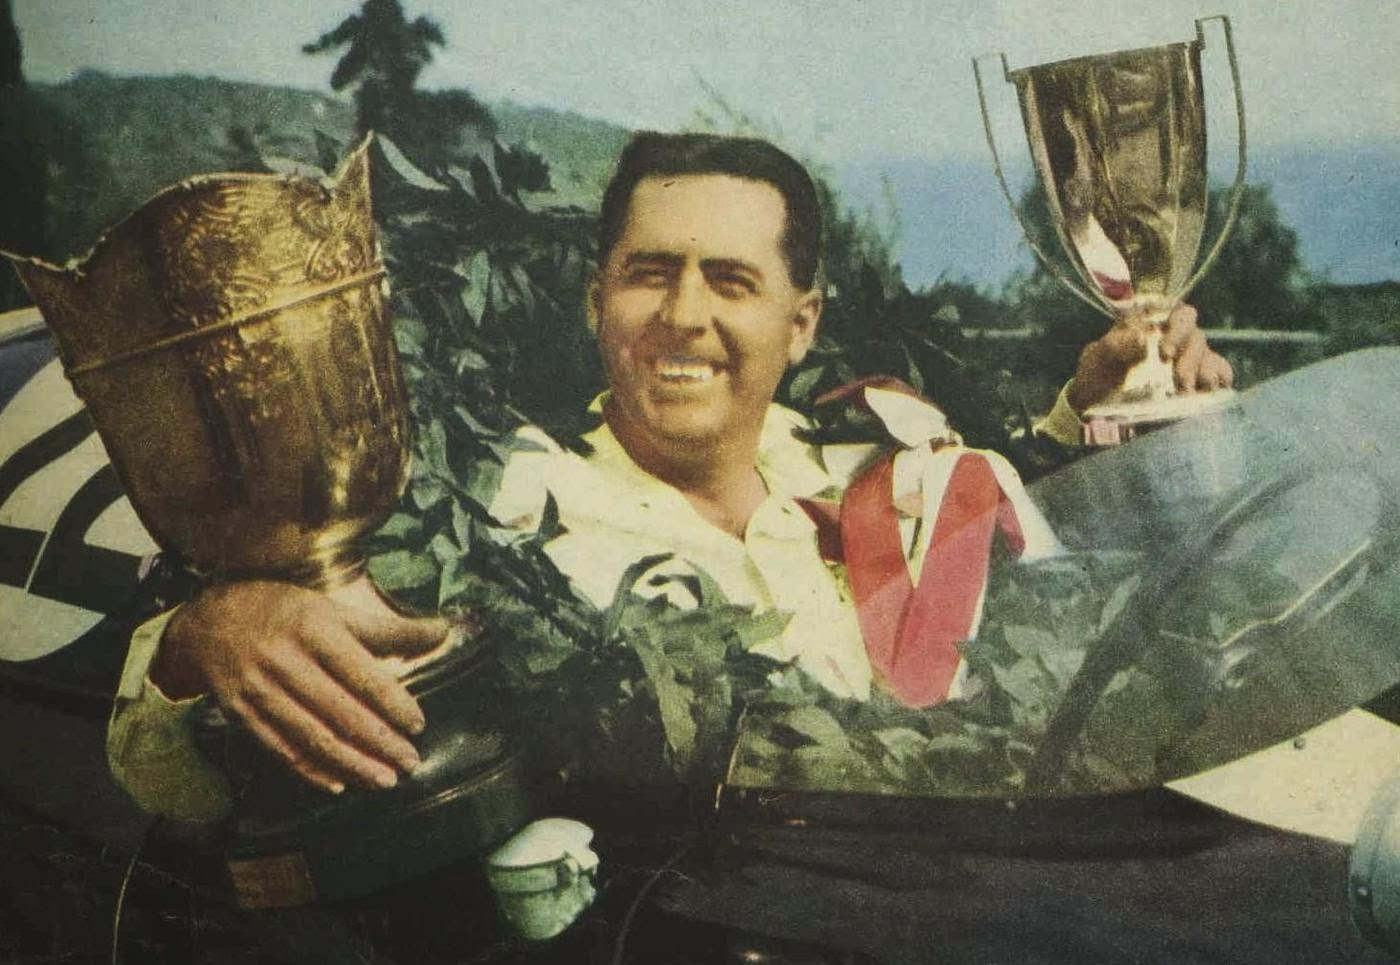 Jack Brabham, world champion, 1959